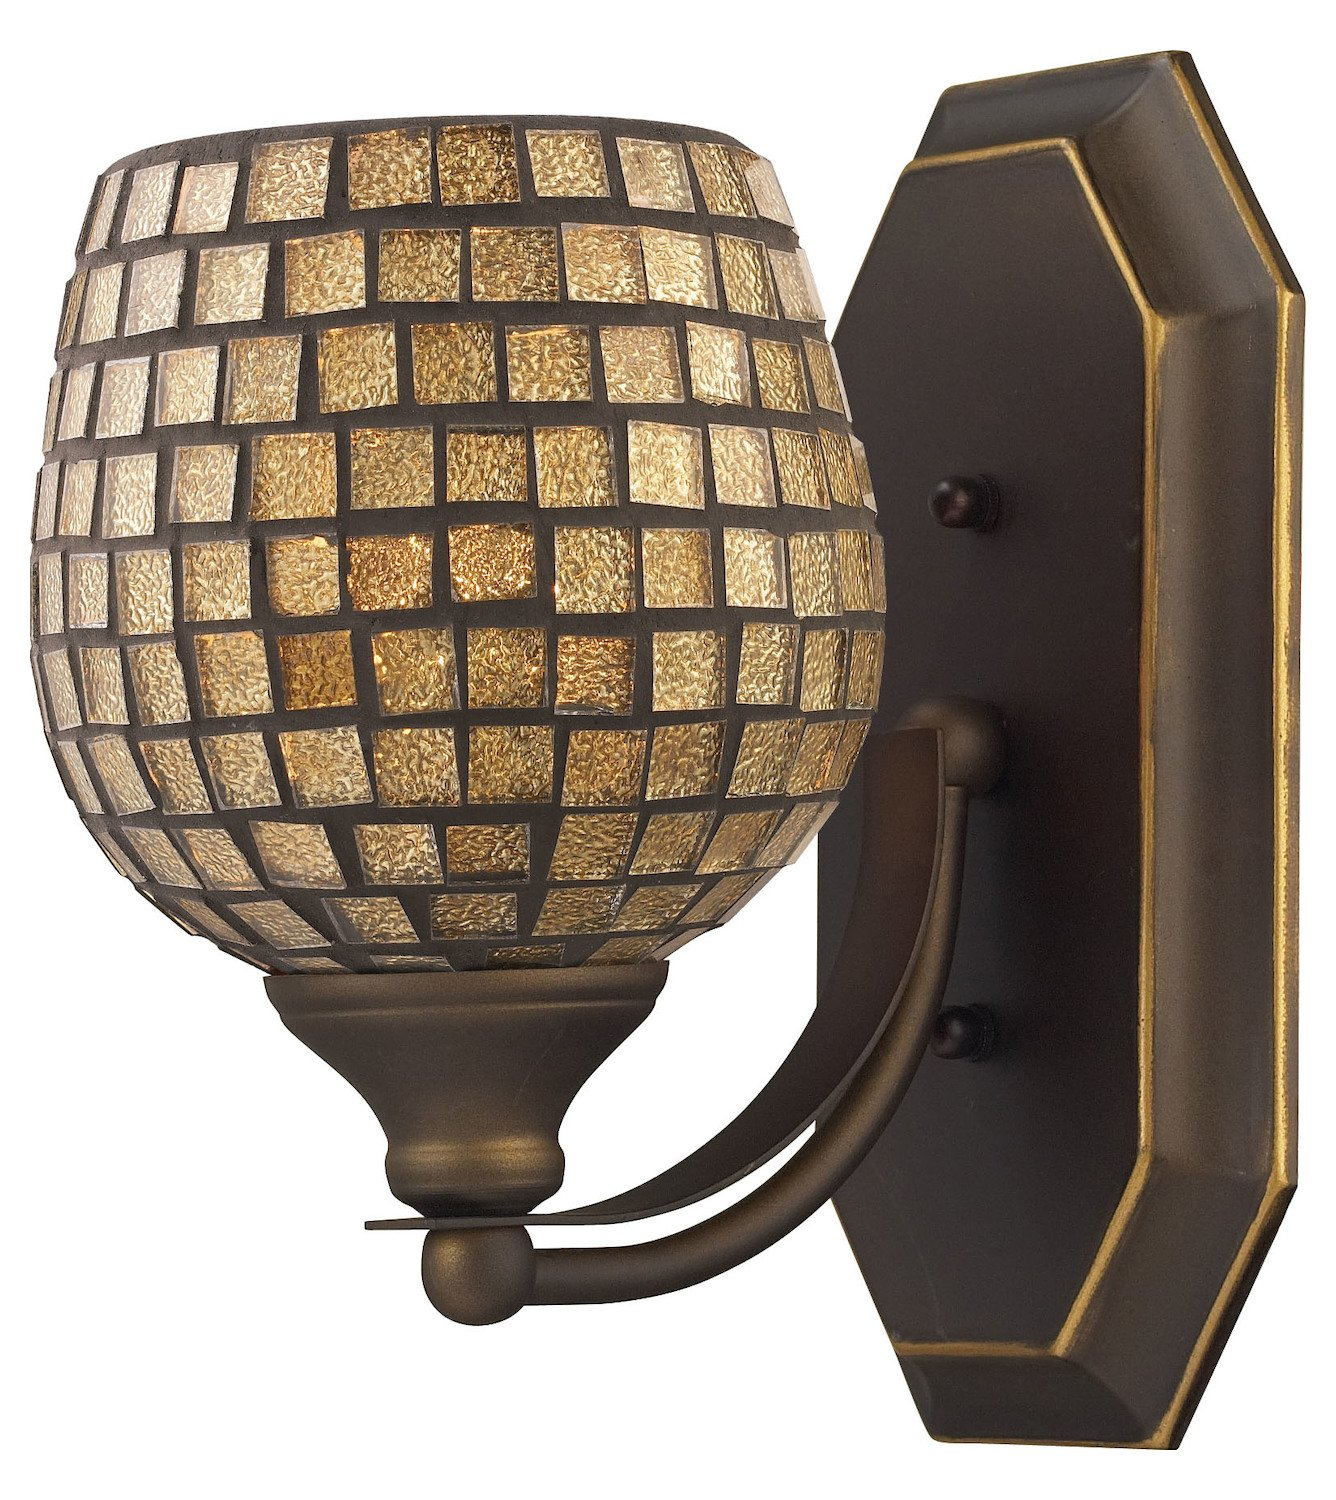 Bath and Spa 1 Light Vanity in Aged Bronze and Gold Leaf Glass by ELK Lighting (Image #2)